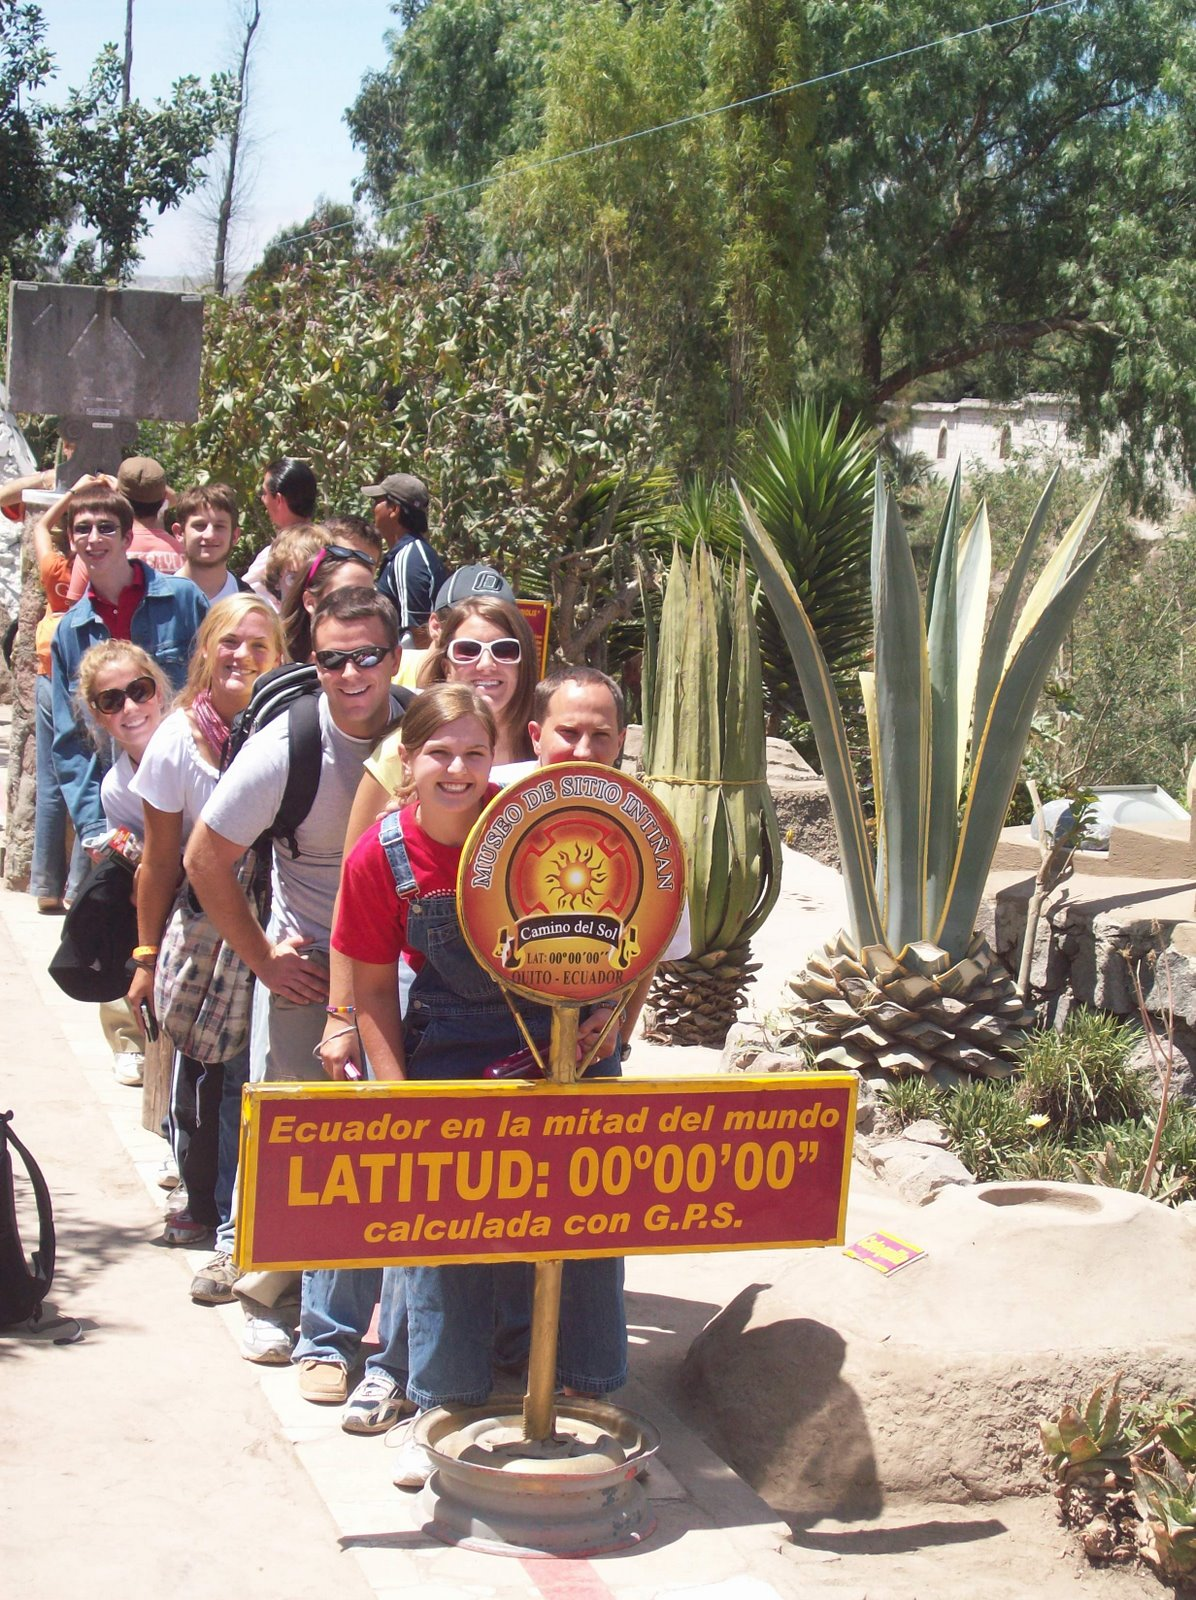 equator picture